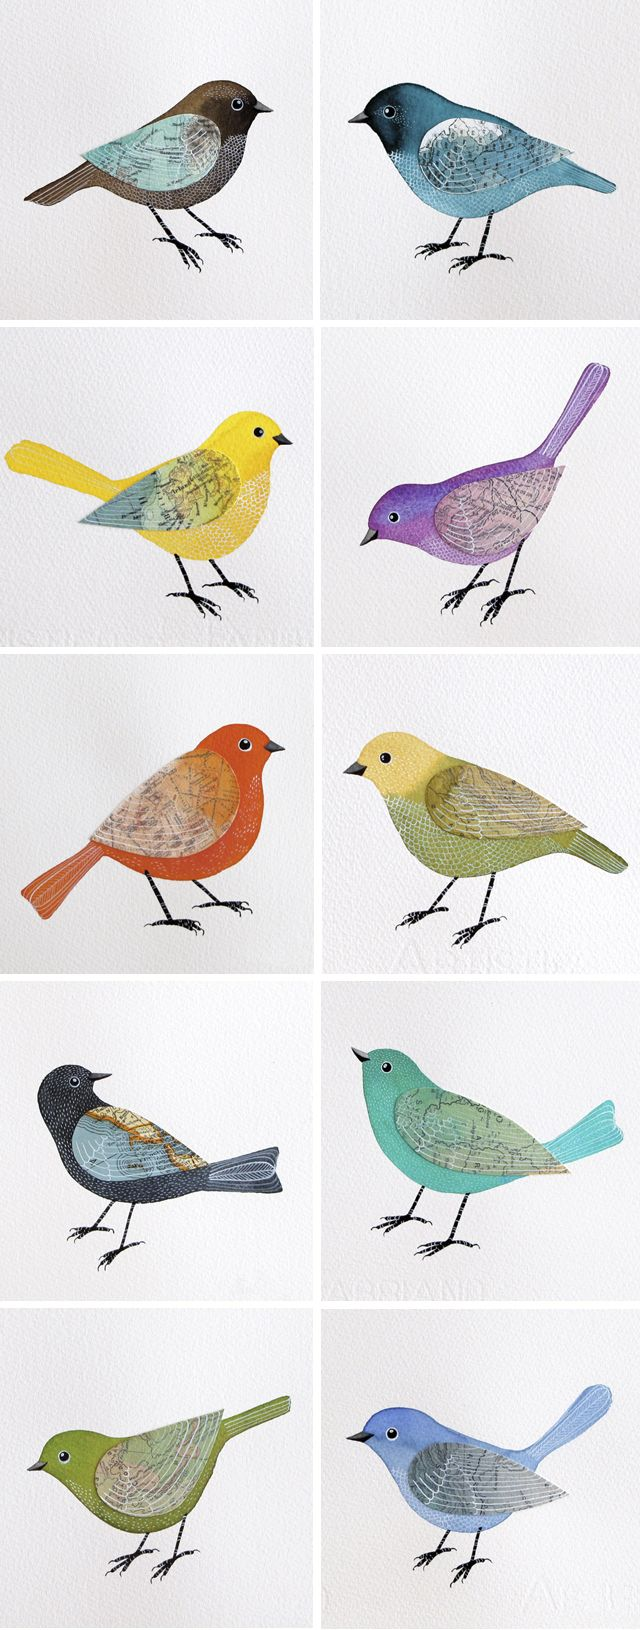 I love Geninne's birds! Here are some new ones she painted.